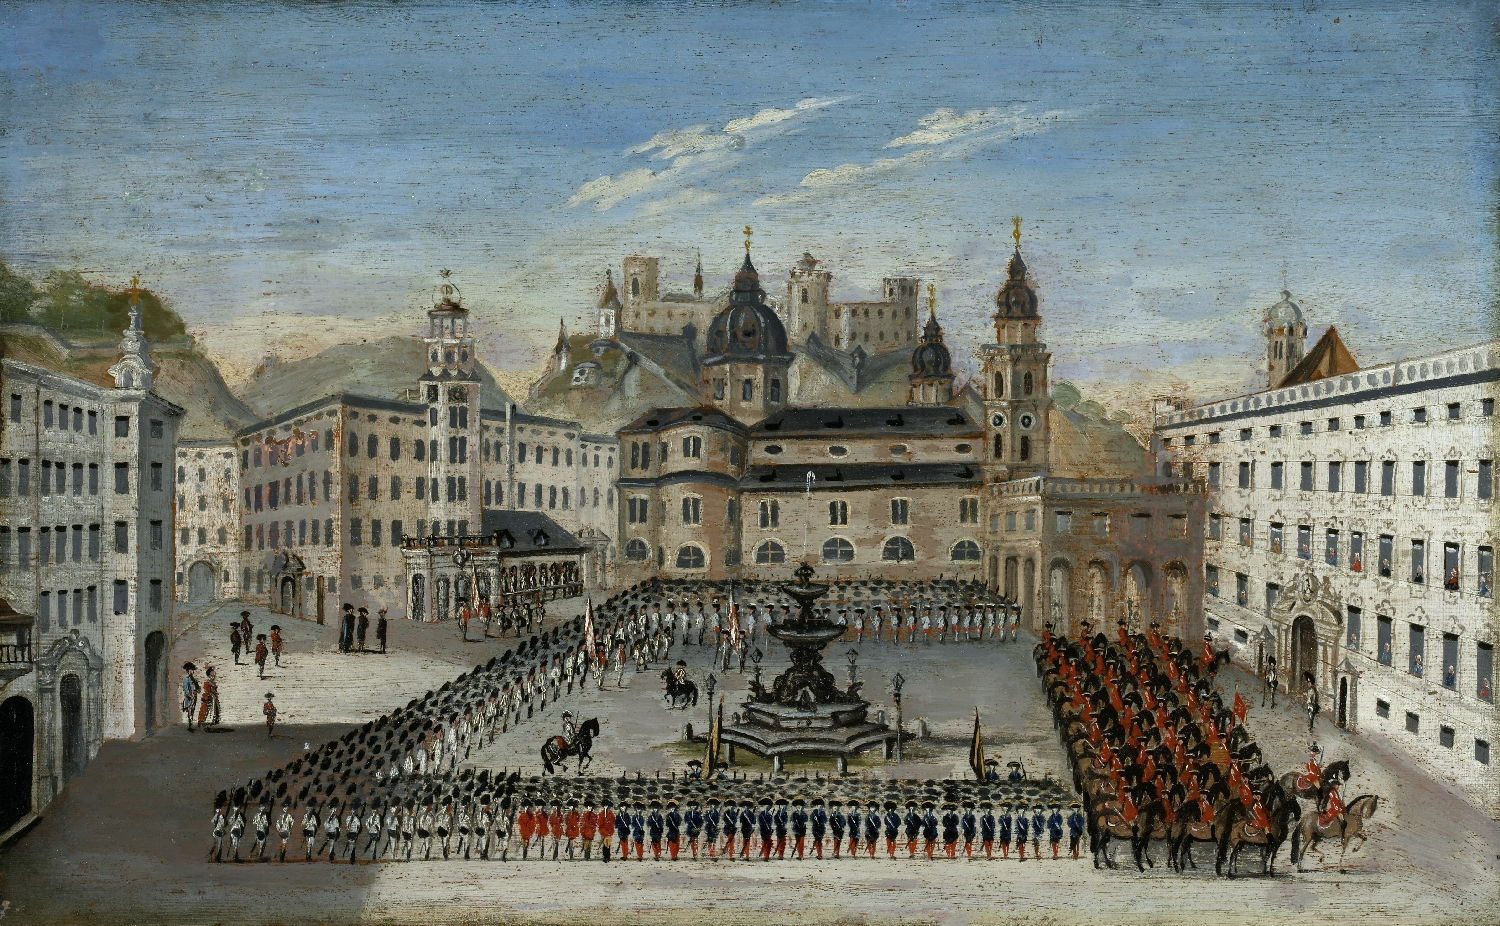 Parade on Residenzplatz, Carl Schneeweis, 1776, oil on wood, inv. no. 603-49